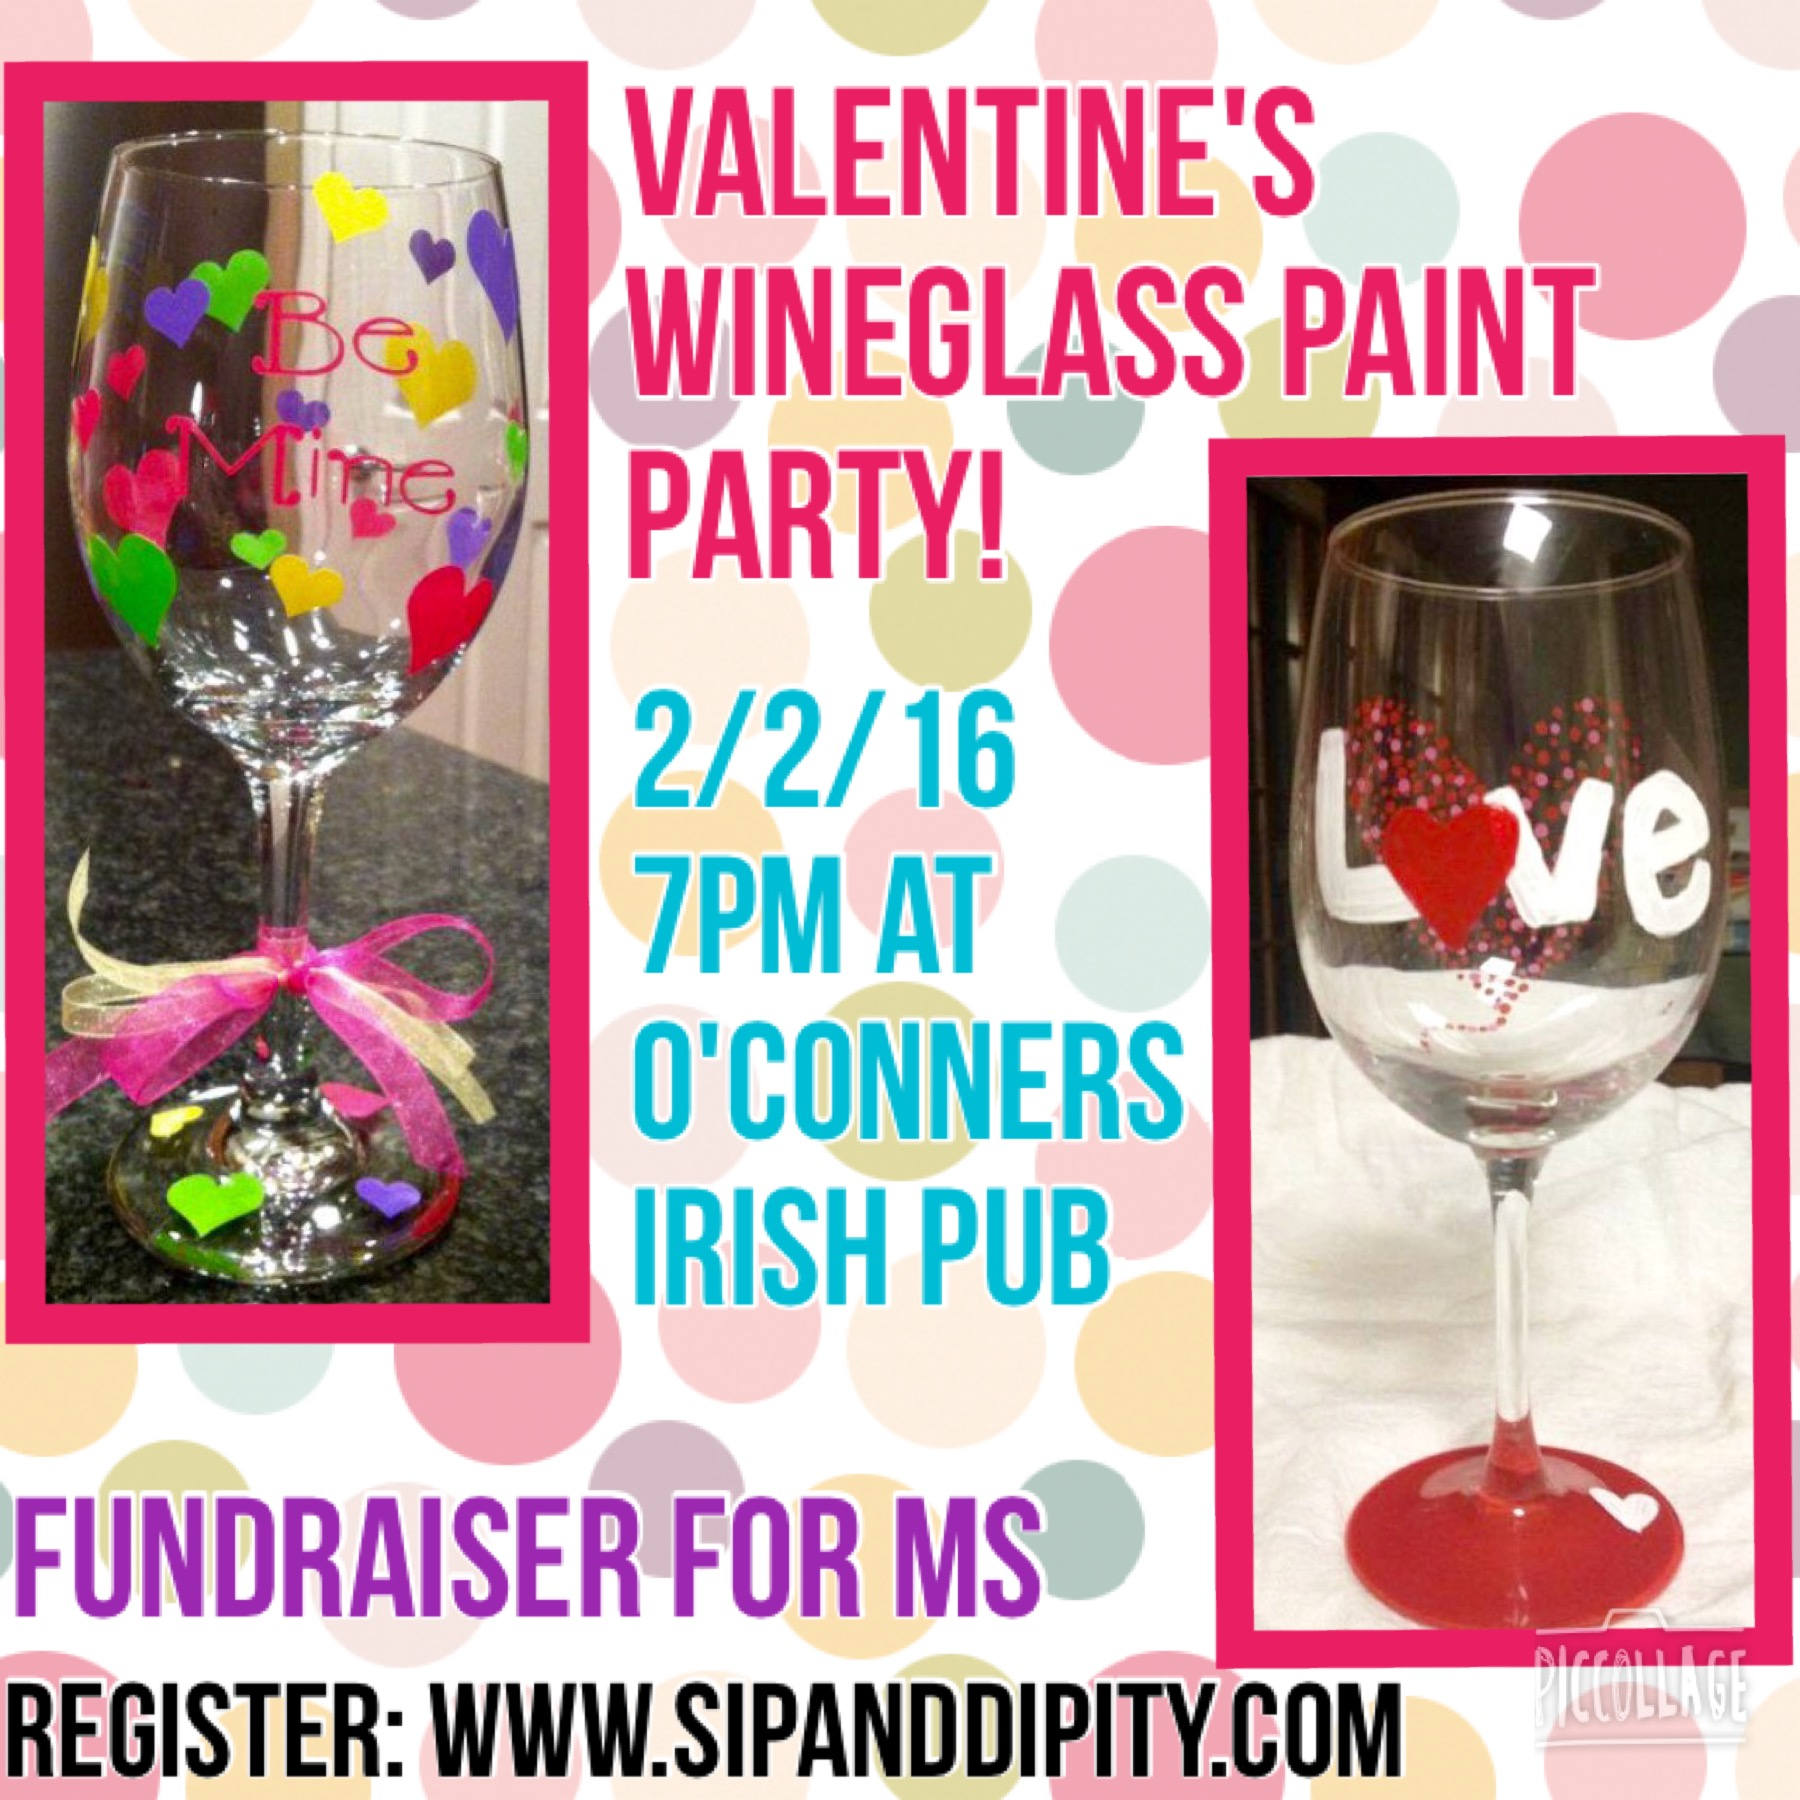 Valentine's Wineglass Paint Party!